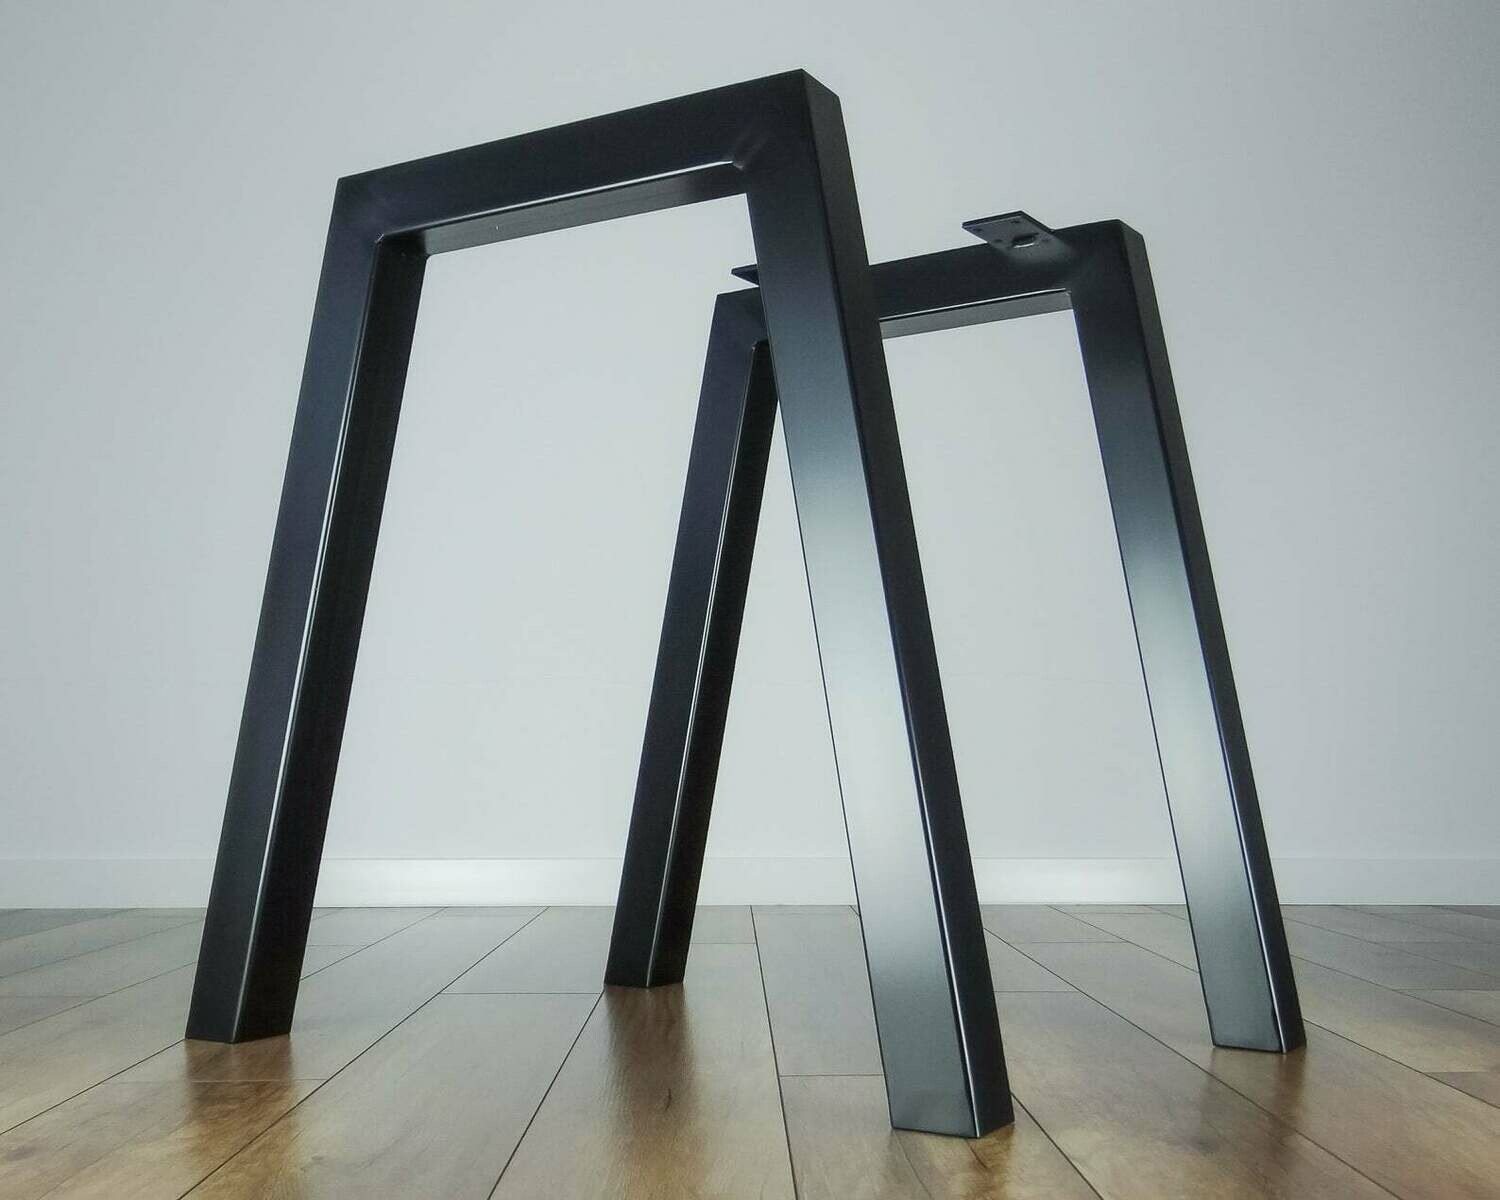 Metal Dining Table Legs (set of 2 legs). Steel Iron Legs for Kitchen Table. Strong, Industrial Furniture Legs. [D010]